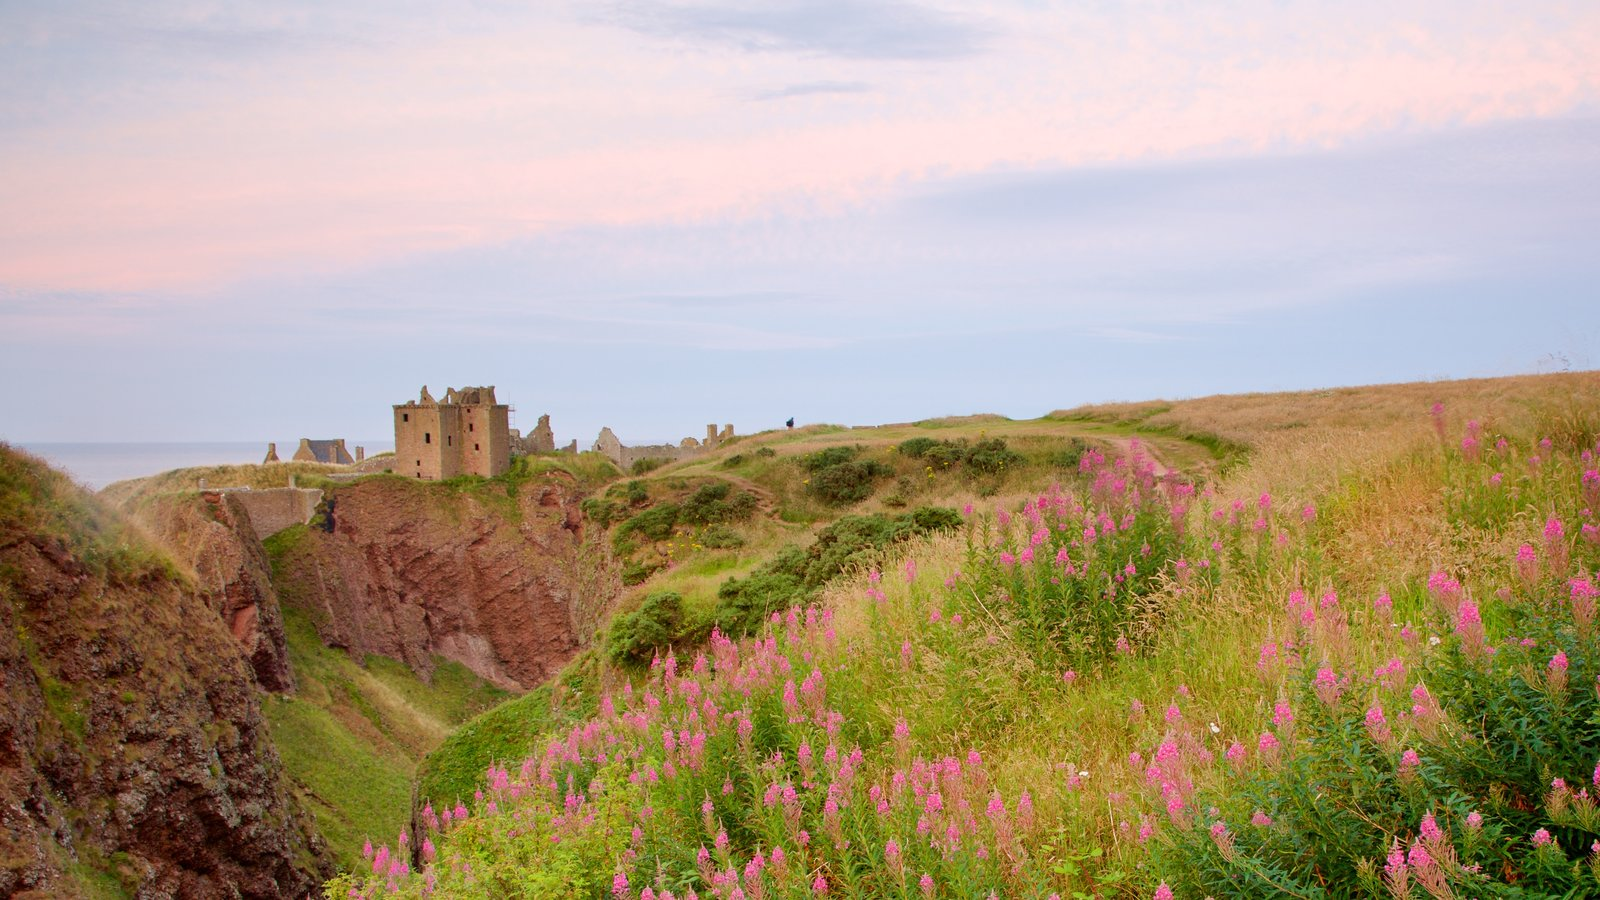 Dunnottar Castle showing farmland and wildflowers